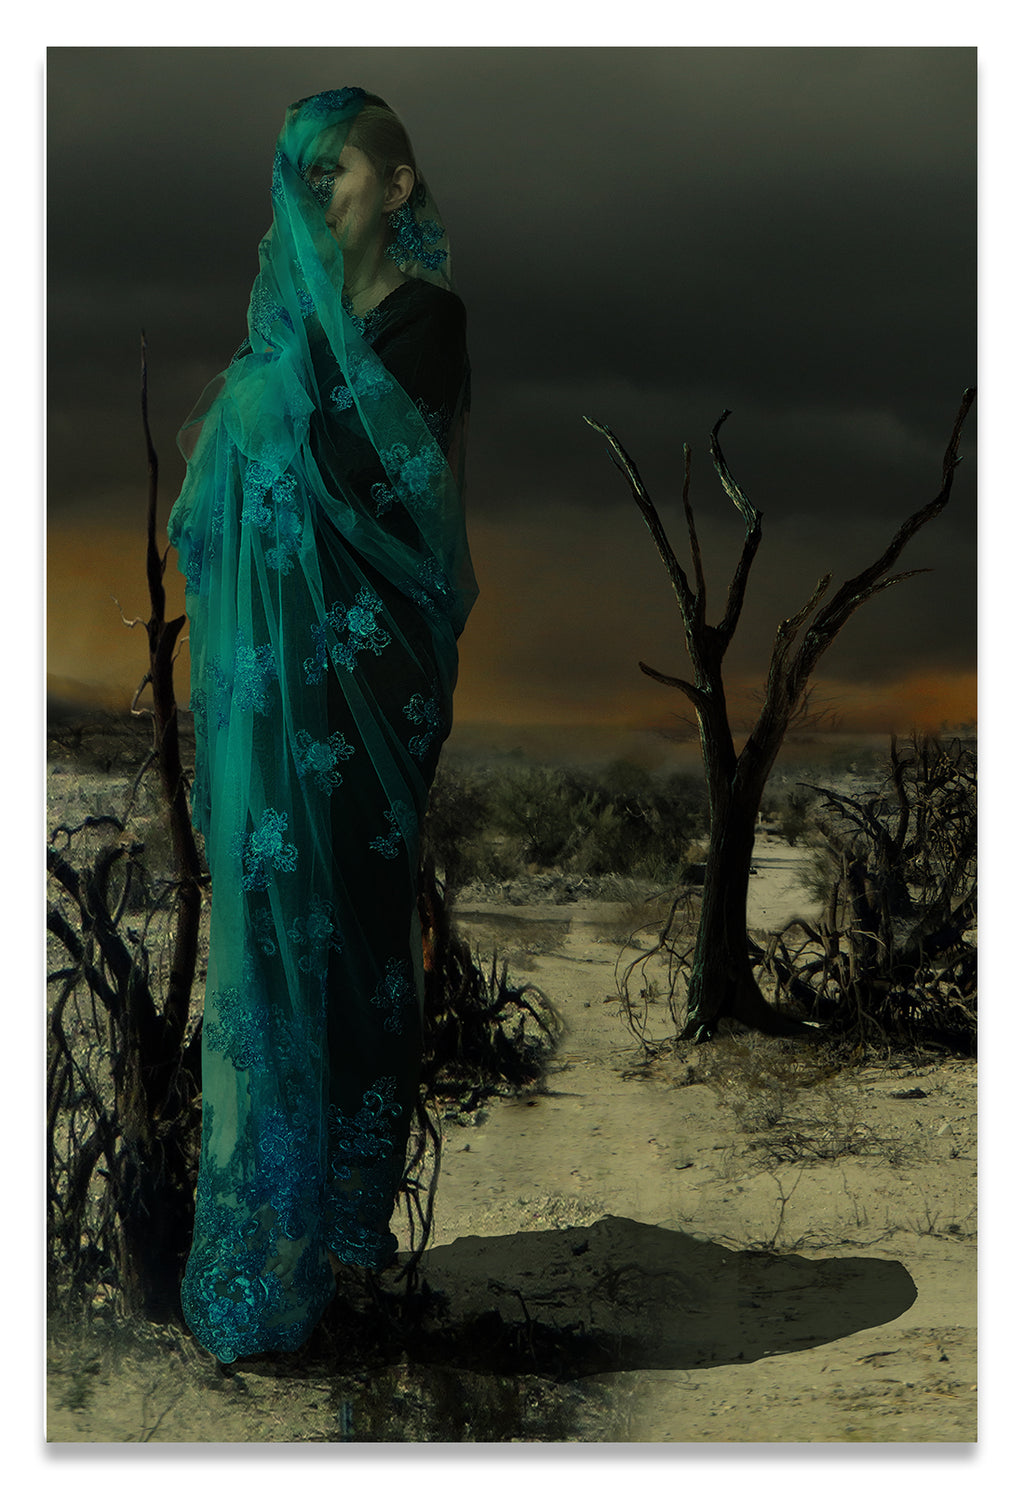 Mother wrapped in Byzantine Blue Lace in a Barren Apocalyptic Landscape-Fine Art Canvas Print